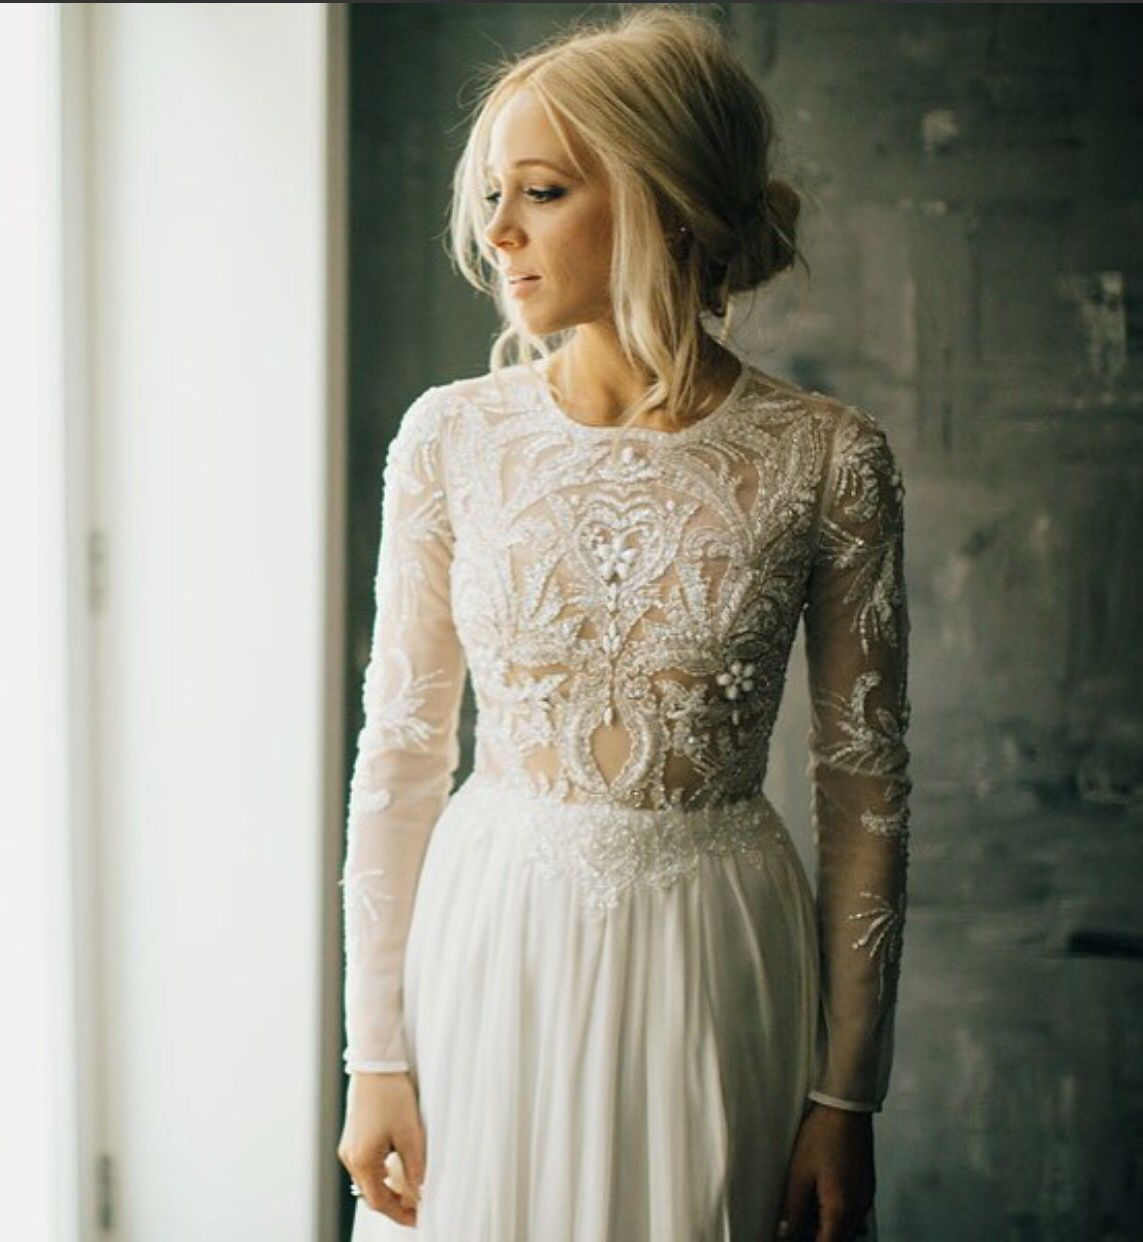 Pin by angelina banar on future wedding ideas pinterest gowns